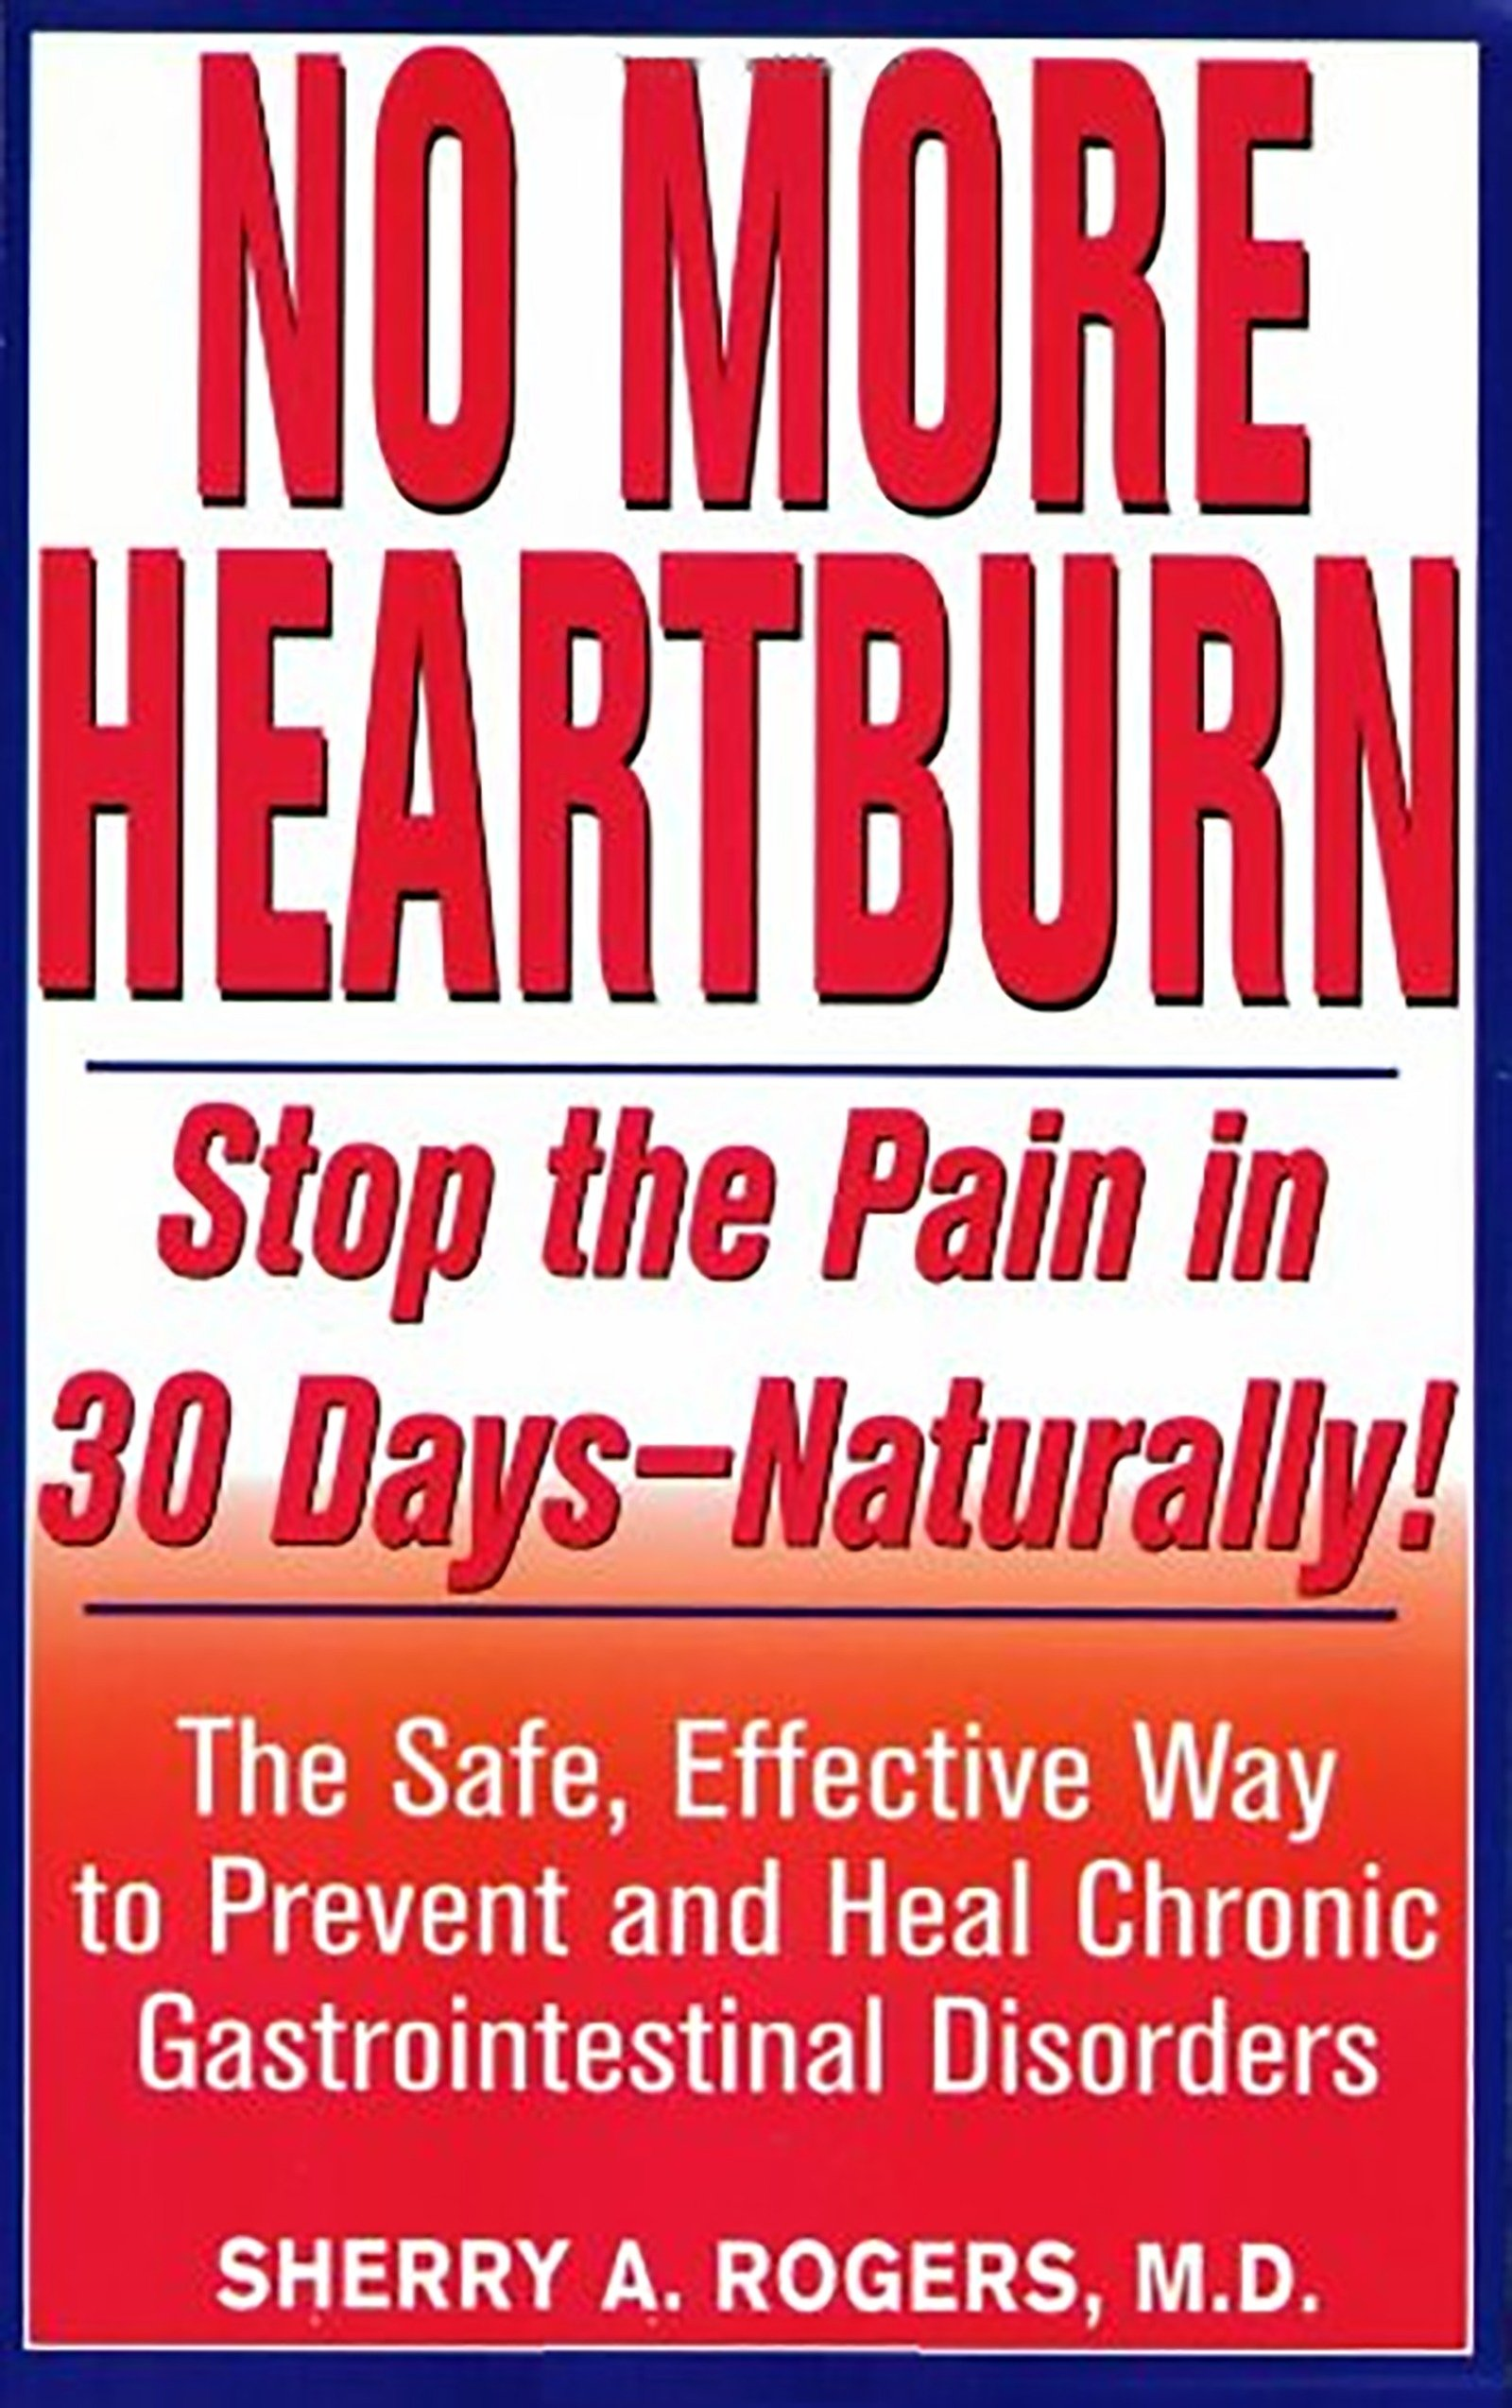 More Heartburn Days Naturally Effective Gastrointestinal product image